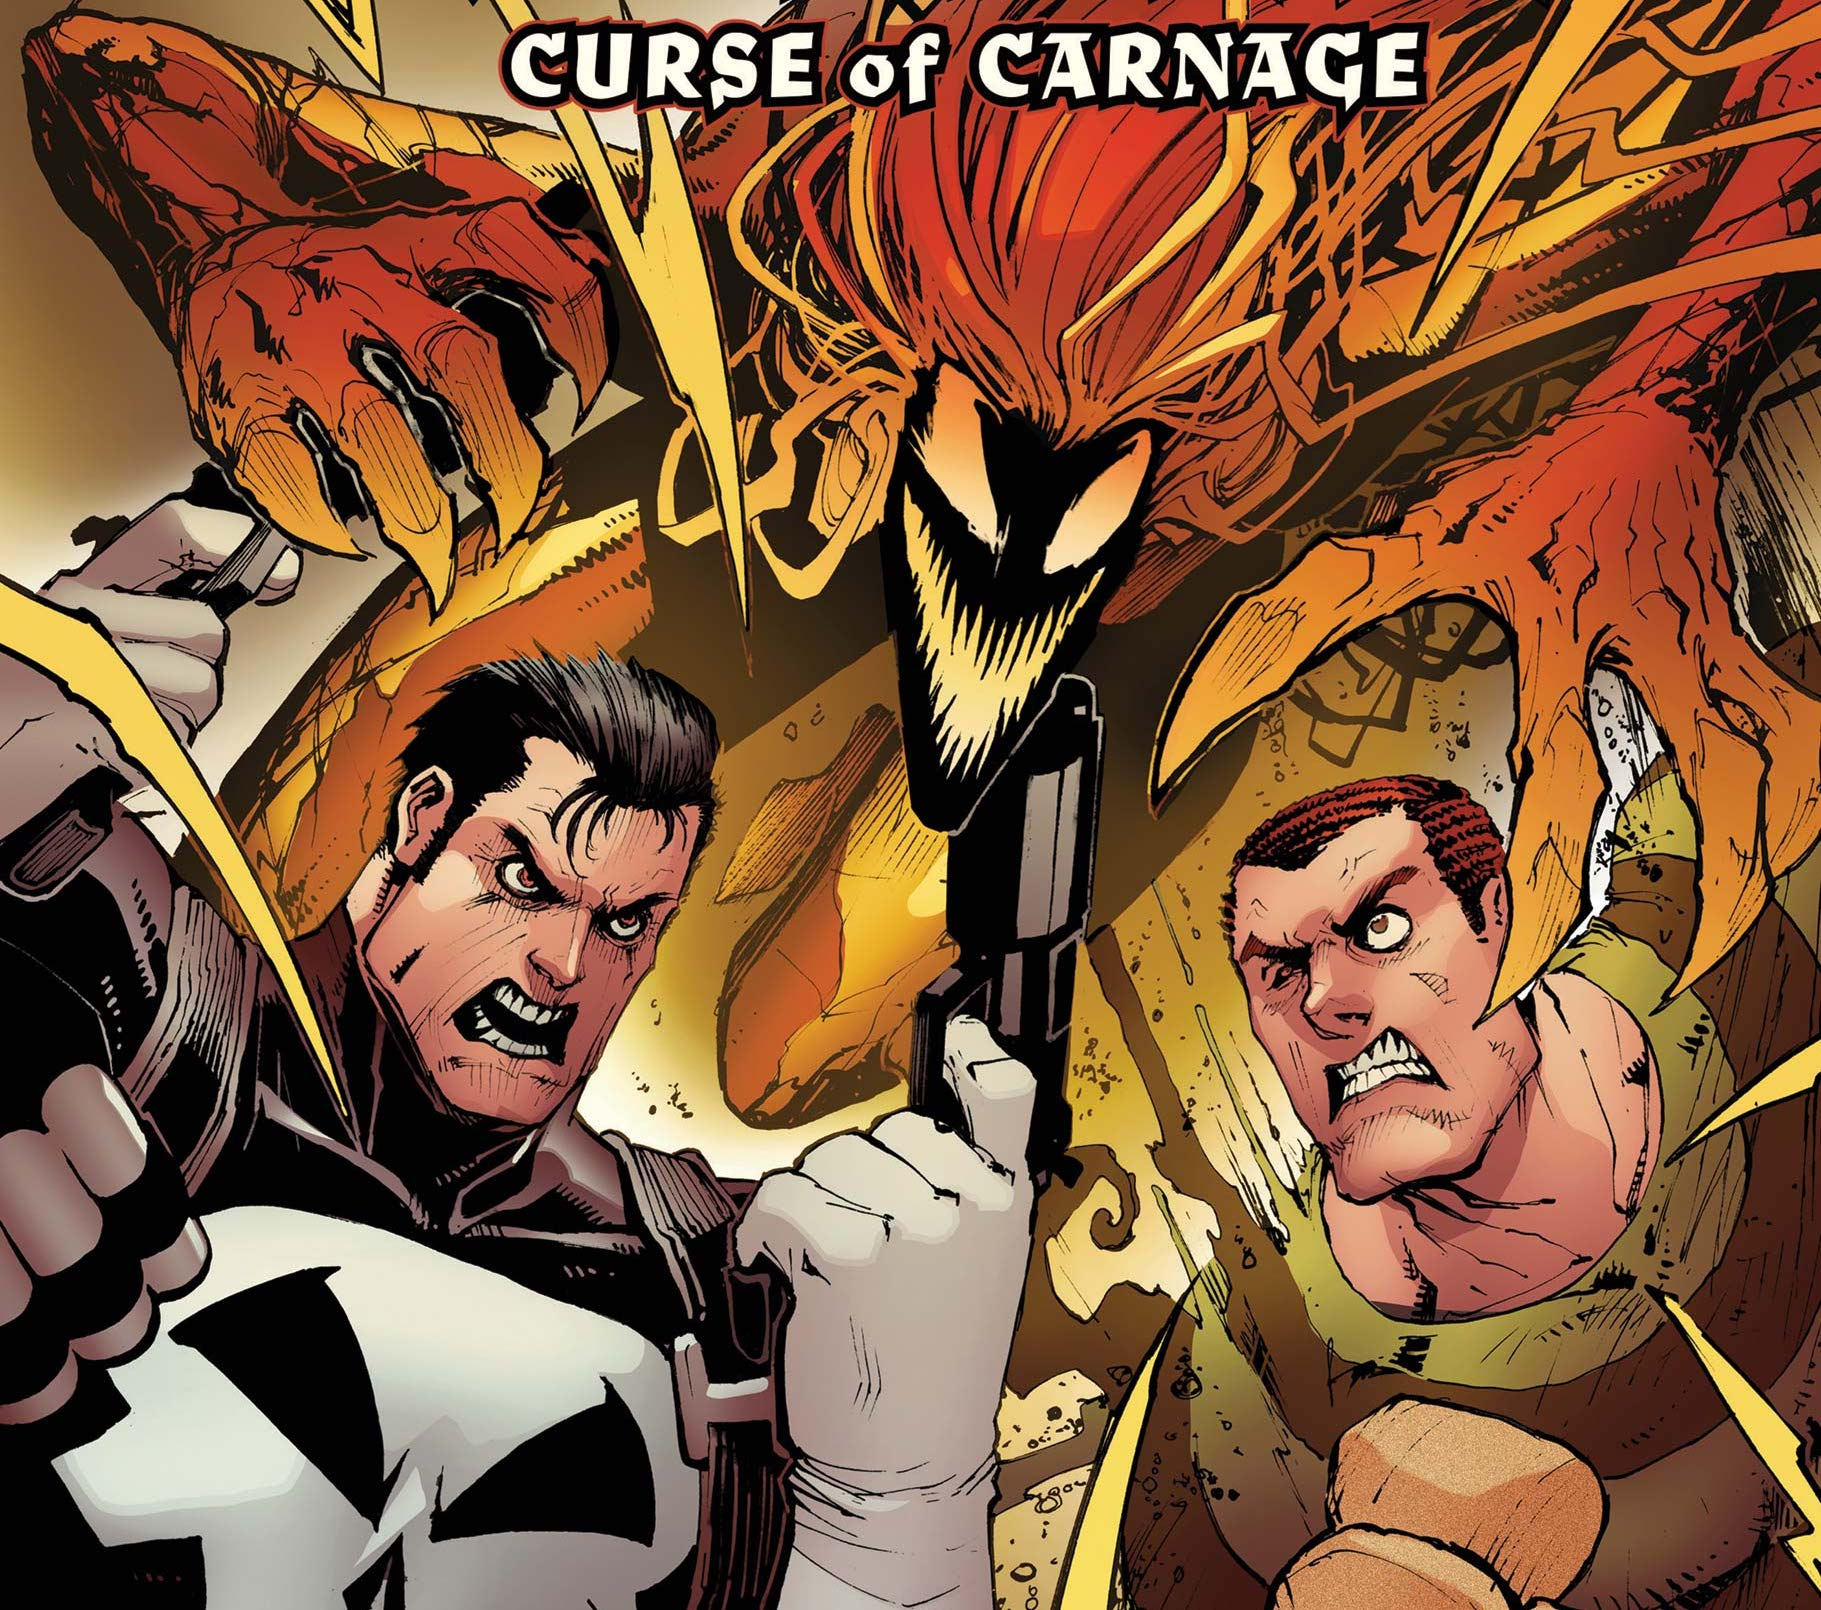 EXCLUSIVE Marvel Preview: Scream: Curse Of Carnage #6